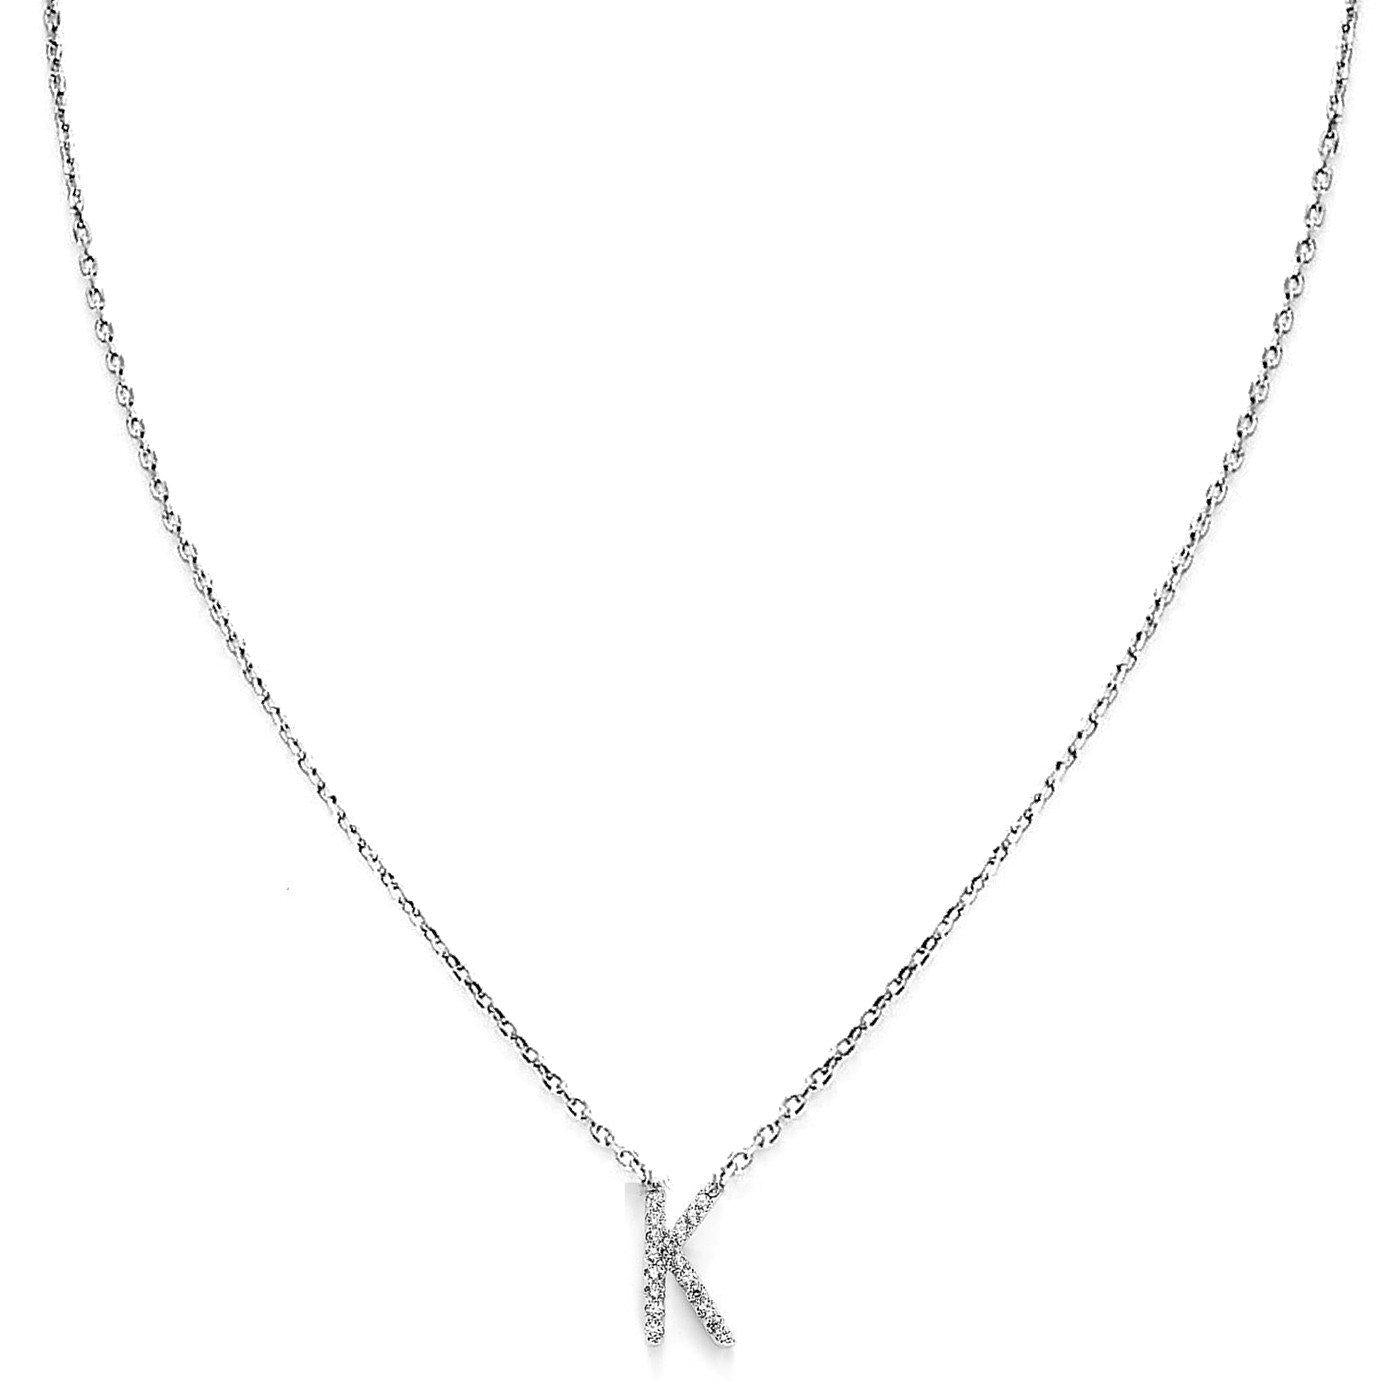 Your Initial K Necklace-Blinglane